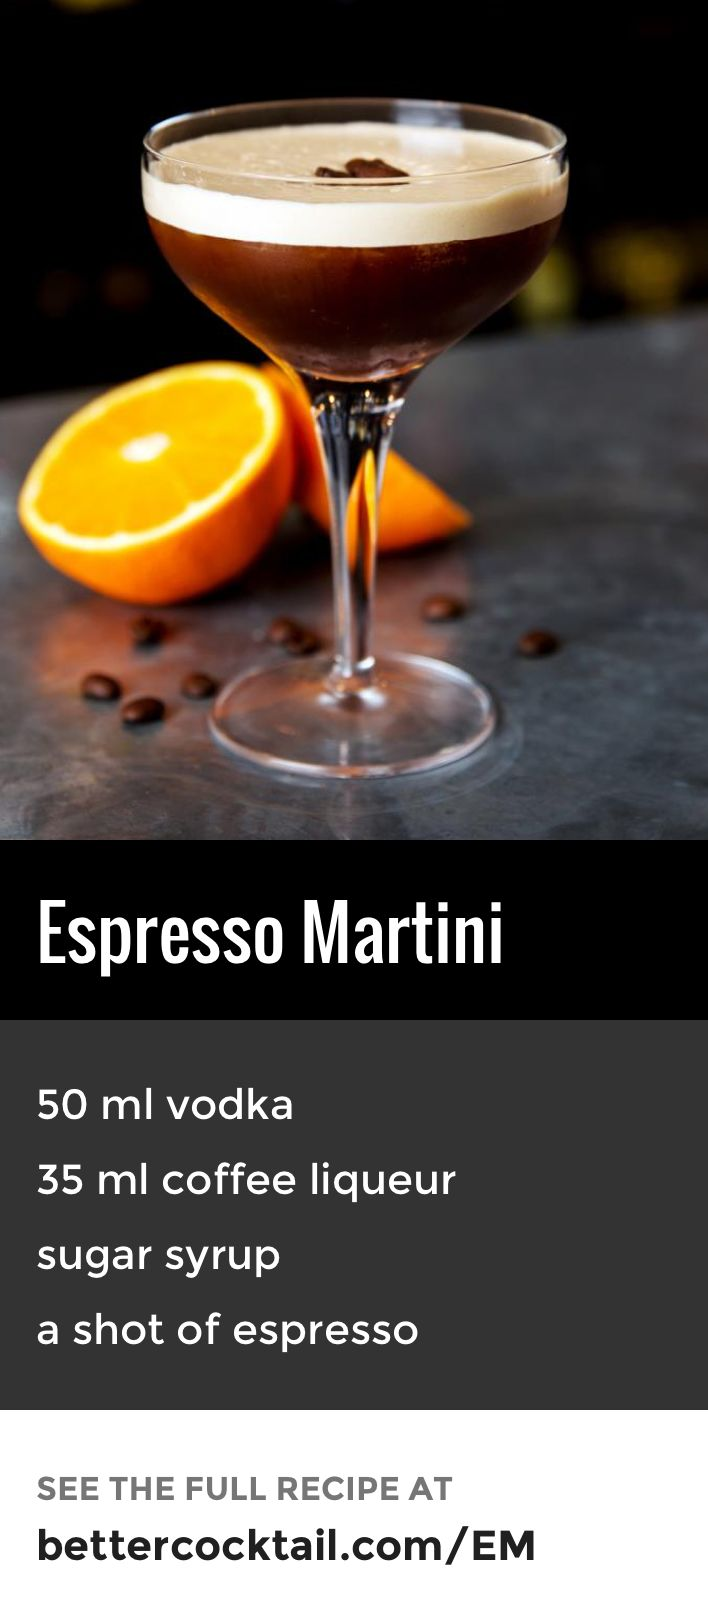 The Espresso Martini is a variant of a classic vodka drink with a strong emphasis on caffeine. As the cocktail contains a shot of espresso, this also adds caffeine content to the drink which is sure to liven you up. The drink also features Kahlúa, a blend of coffee liqueur and rum. The Espresso Martini is served in a cocktail glass and presented with a garnish of coffee beans on top.